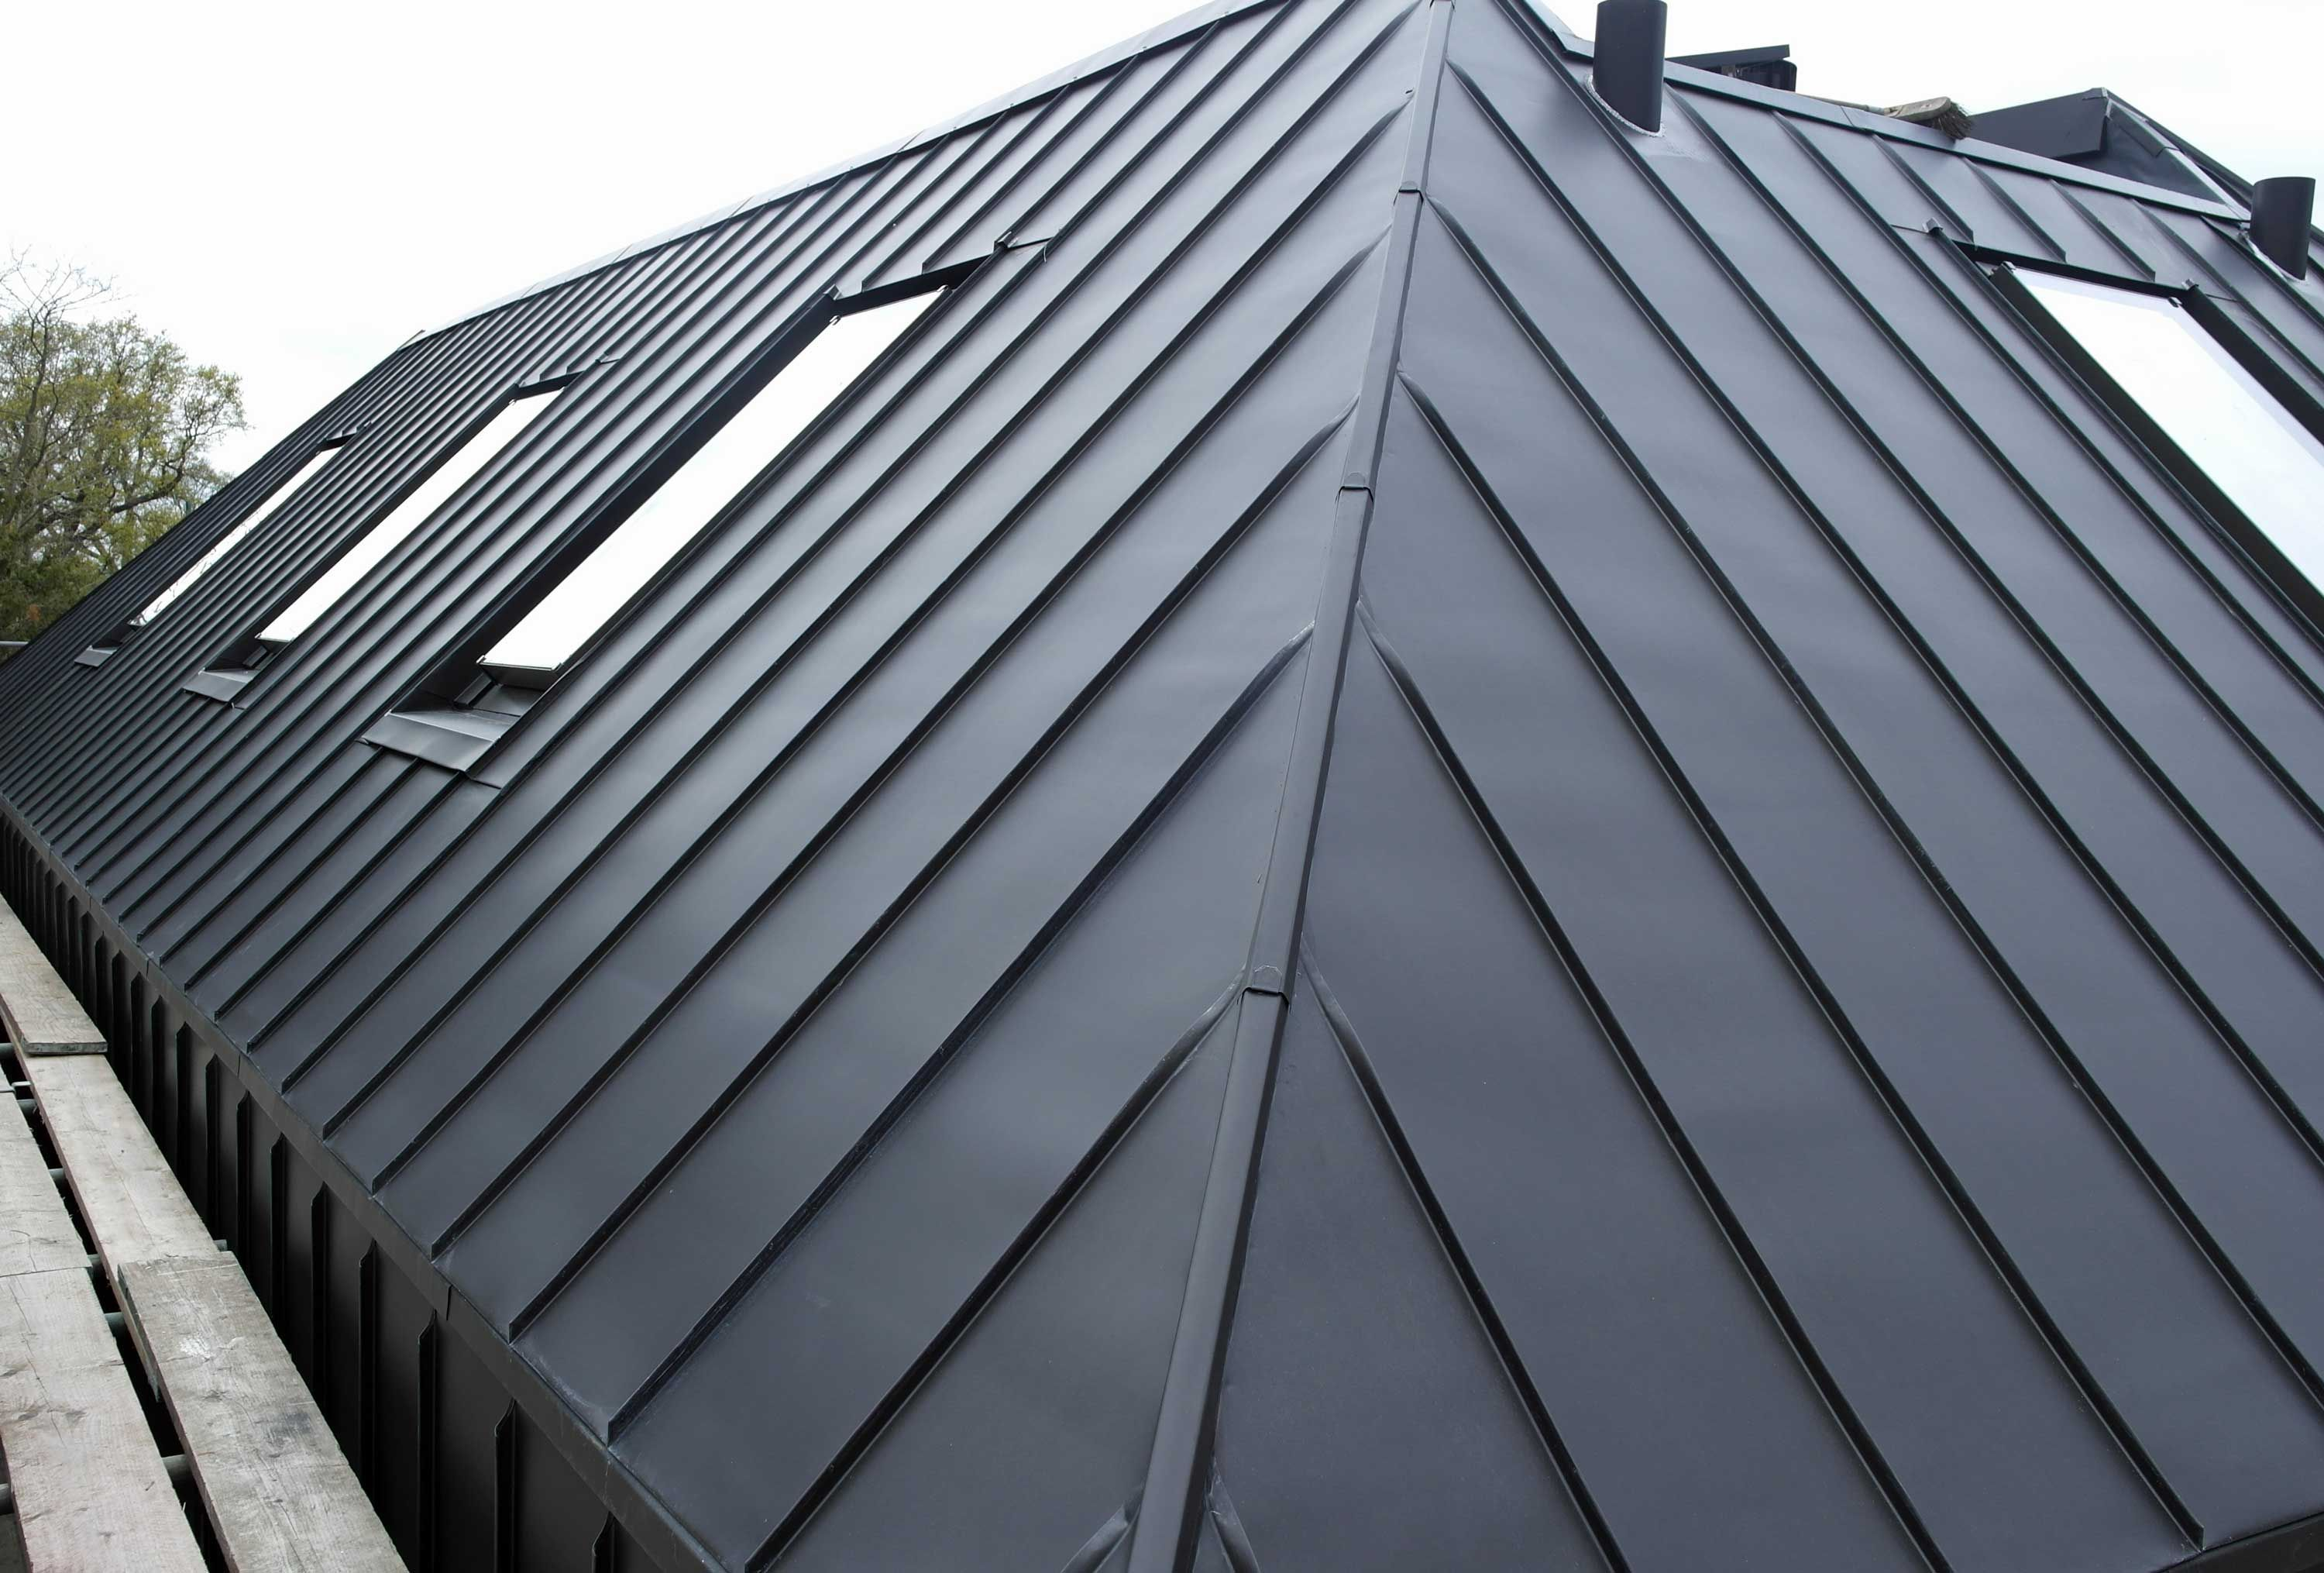 Pin By Msmile On Master Zinc Roof Roof Cladding Roofing